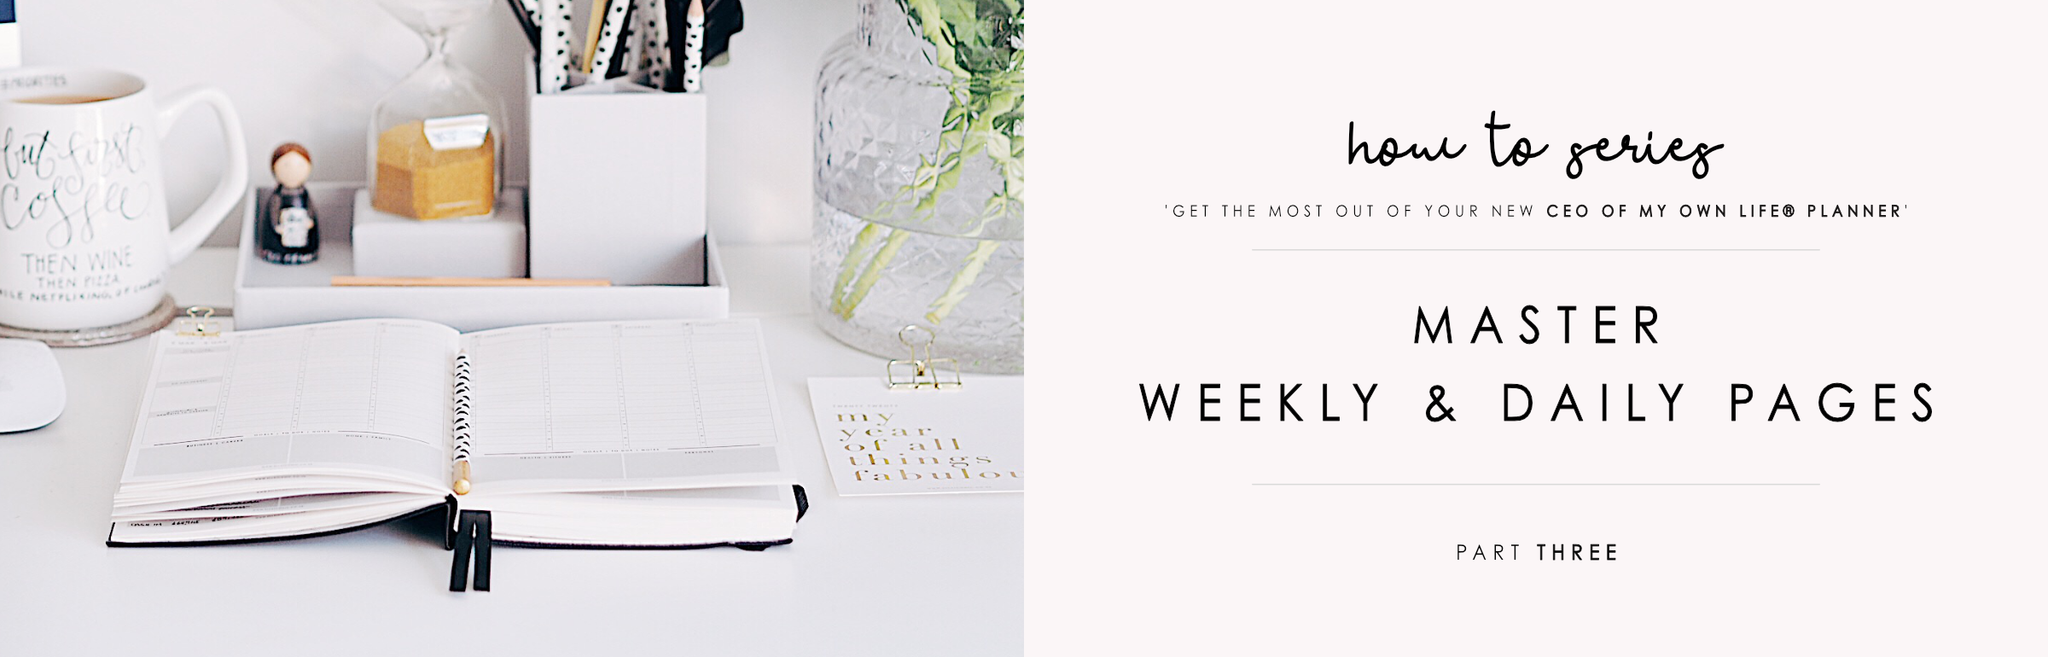 Part Three | How to Effectively Use Weekly & Daily Planning Pages | CEO of My Own Life® Planner